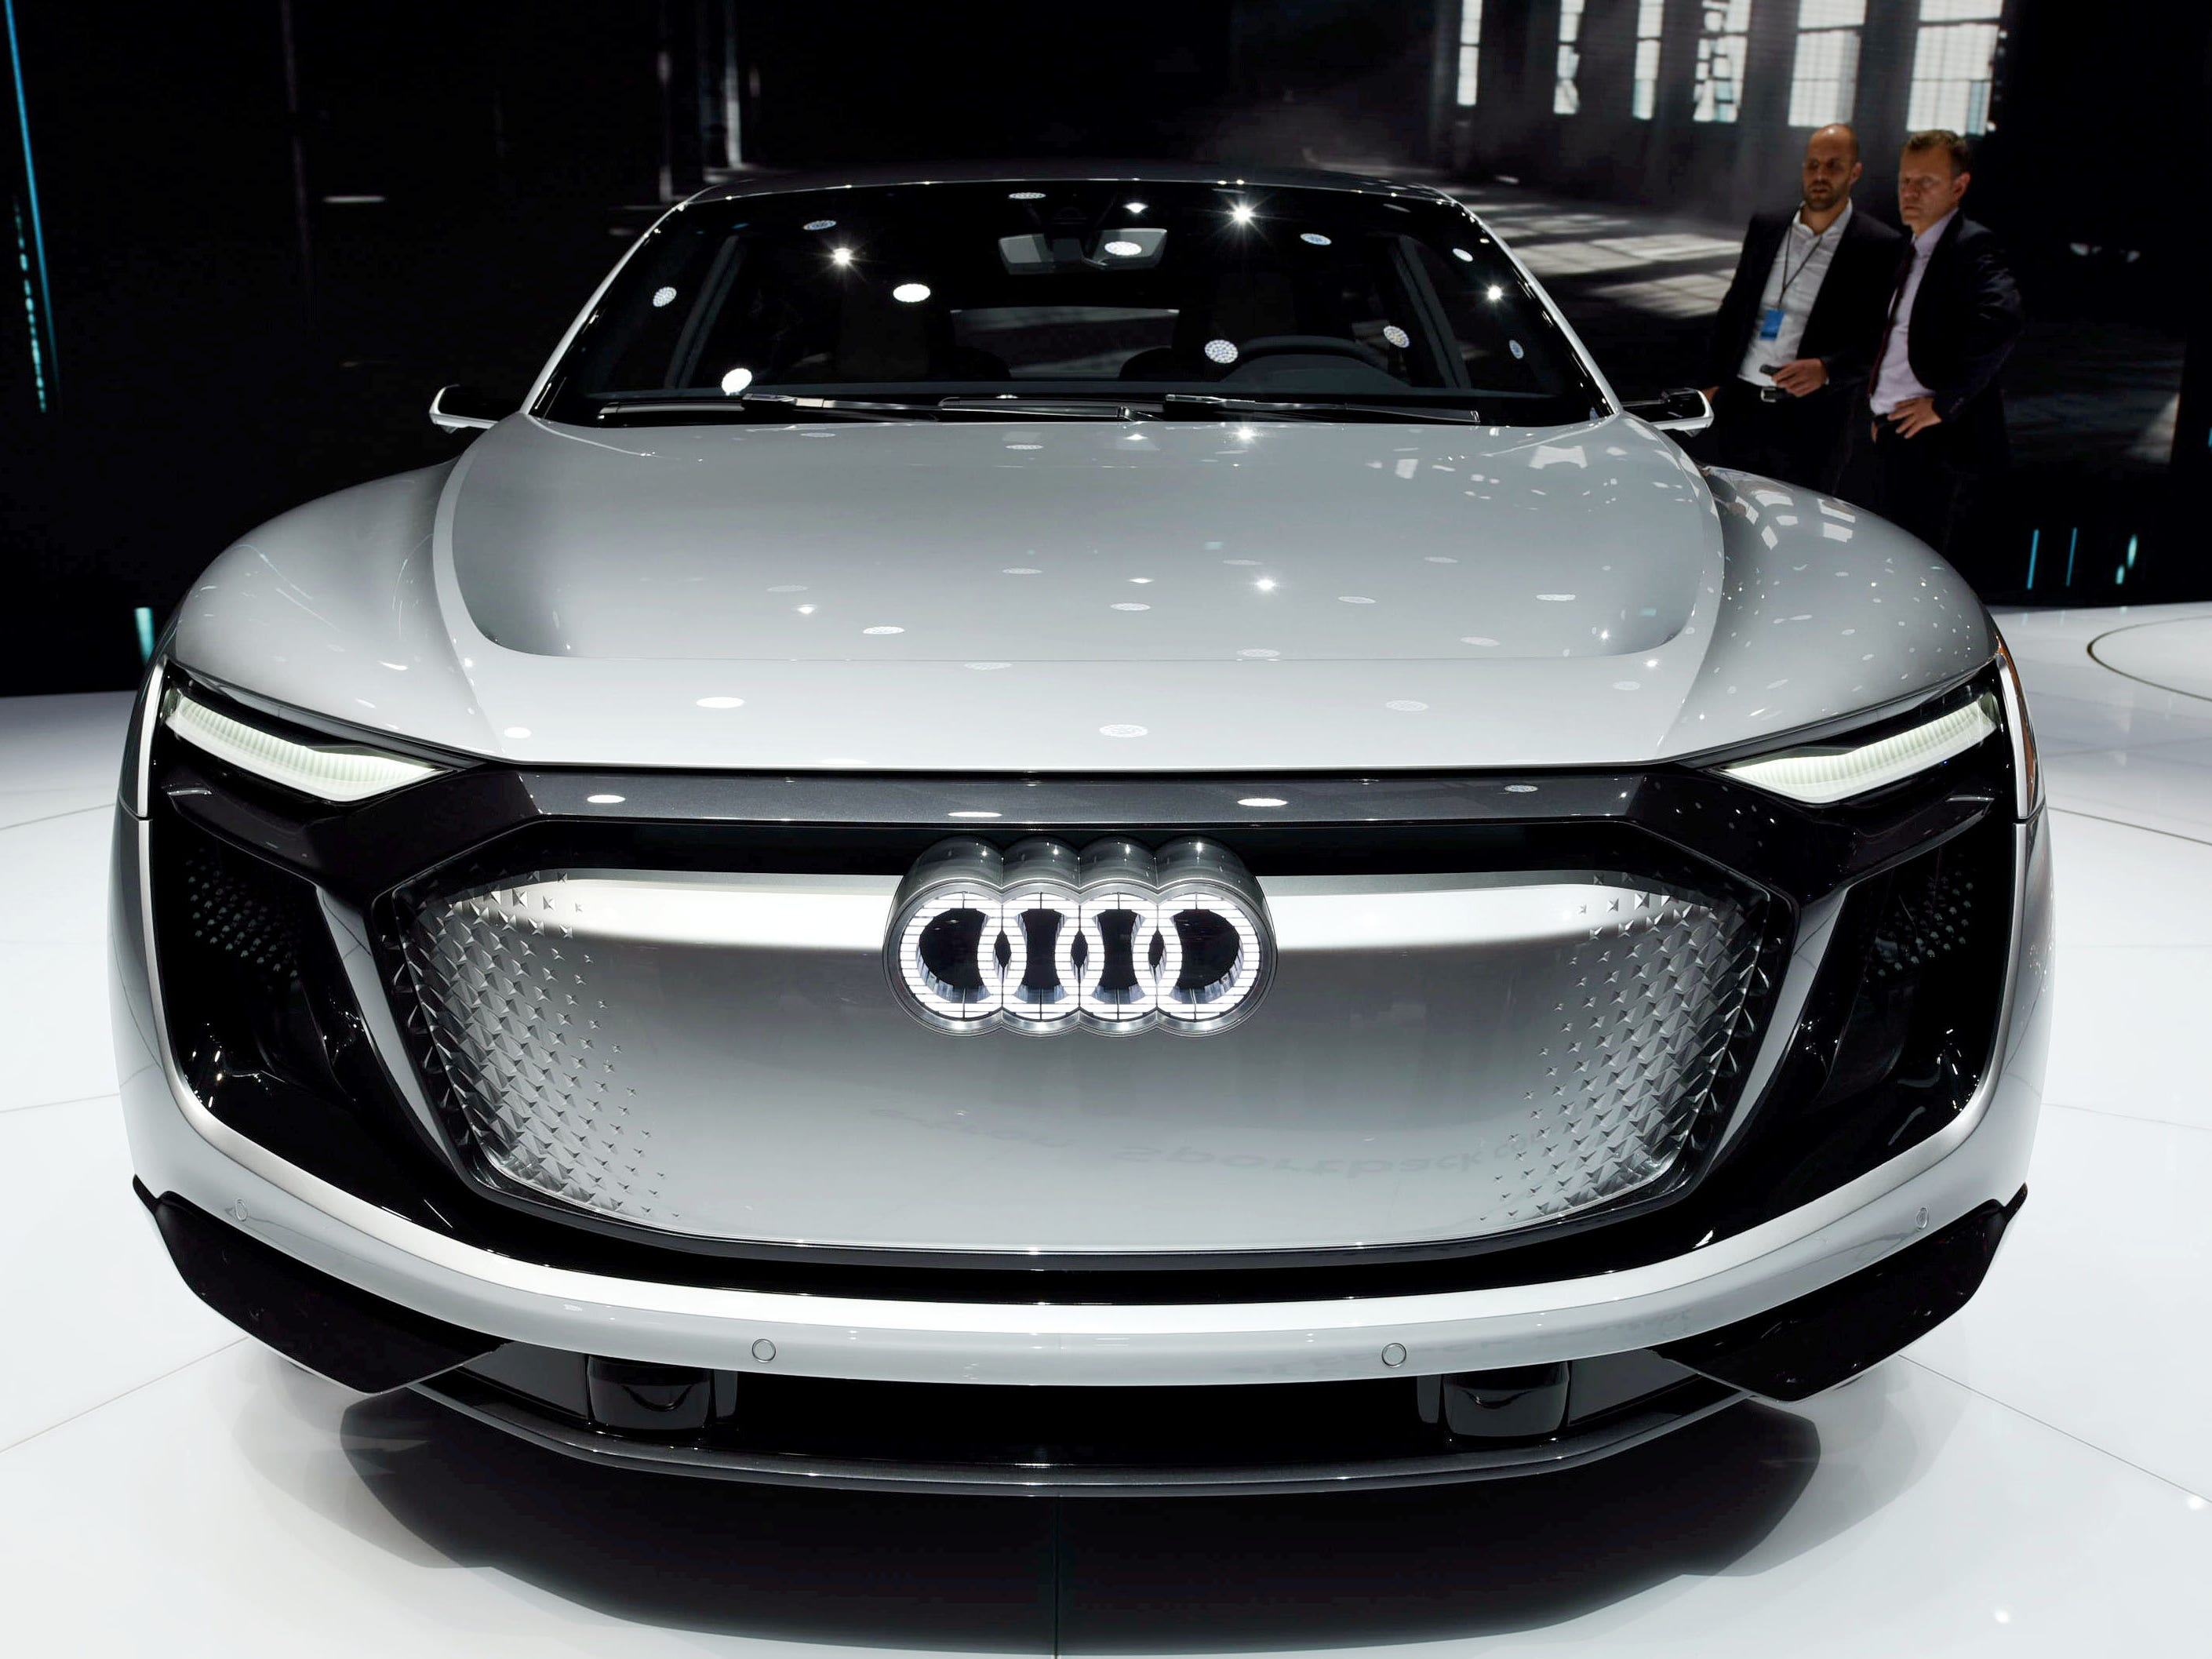 An Audi e-tron Sportback concept car is on display during the 17th Shanghai International Automobile Industry Exhibition in Shanghai on April 20, 2017.